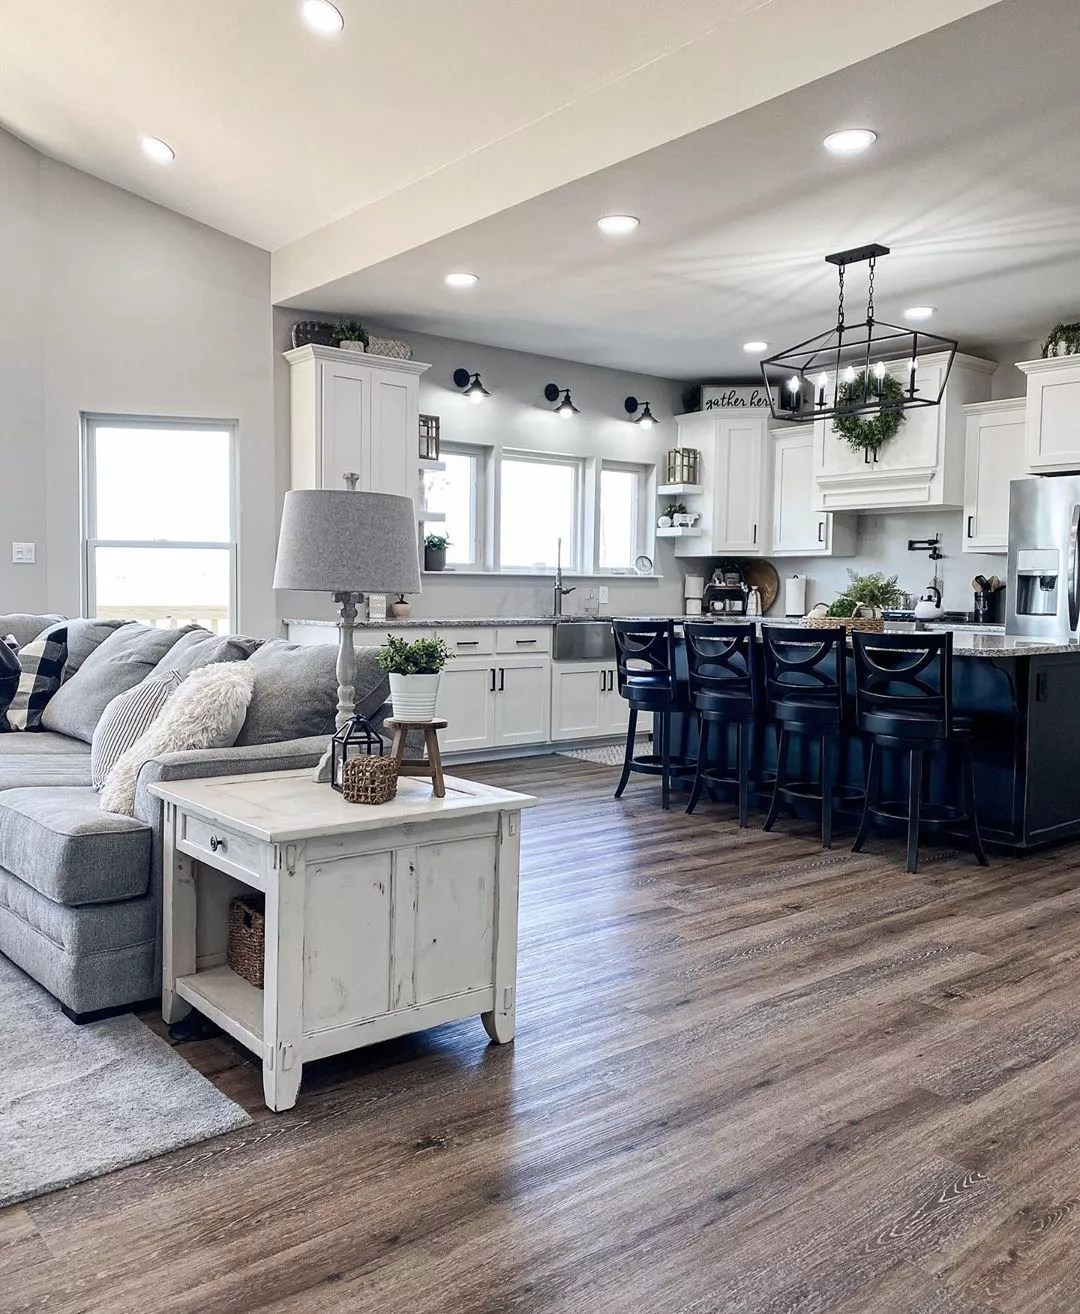 Home with open floor plan. Photo by Instagram user @bear_creek_farmhouse